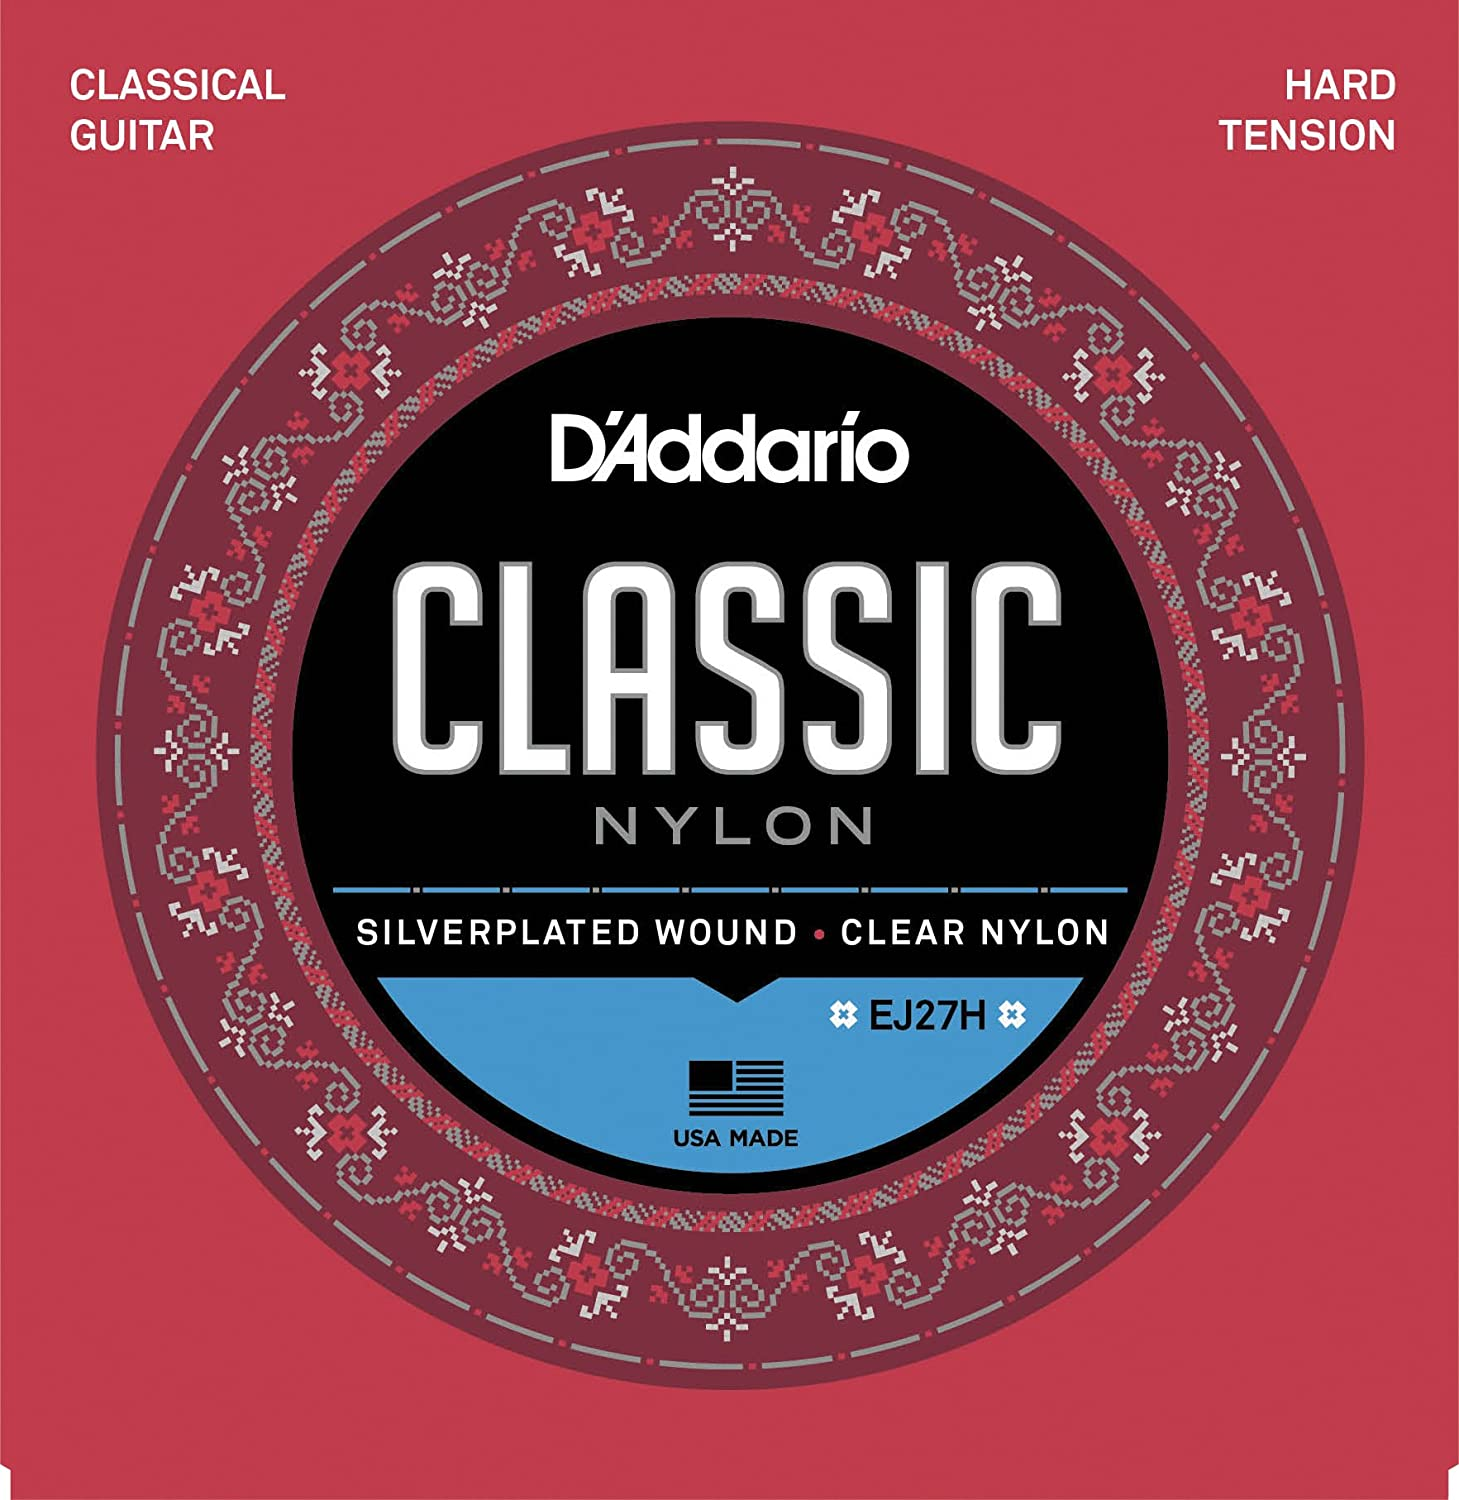 D'Addario EJ27N 1/2 Student Nylon Fractional Classical Guitar Strings, Normal Tension D' Addario